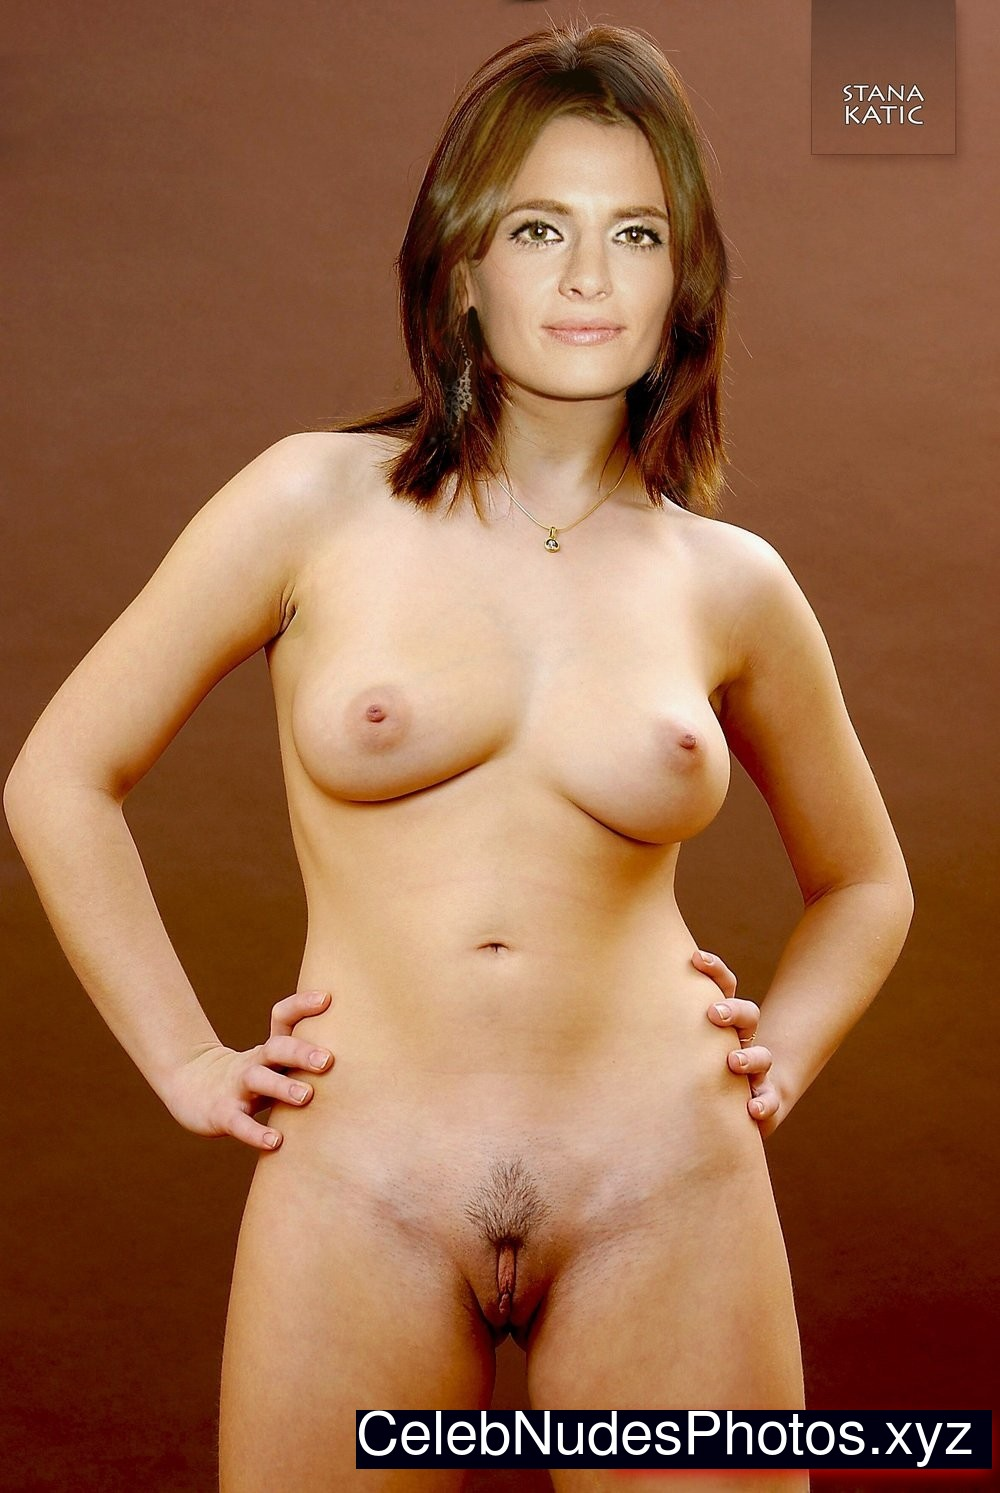 stana katic naked picture